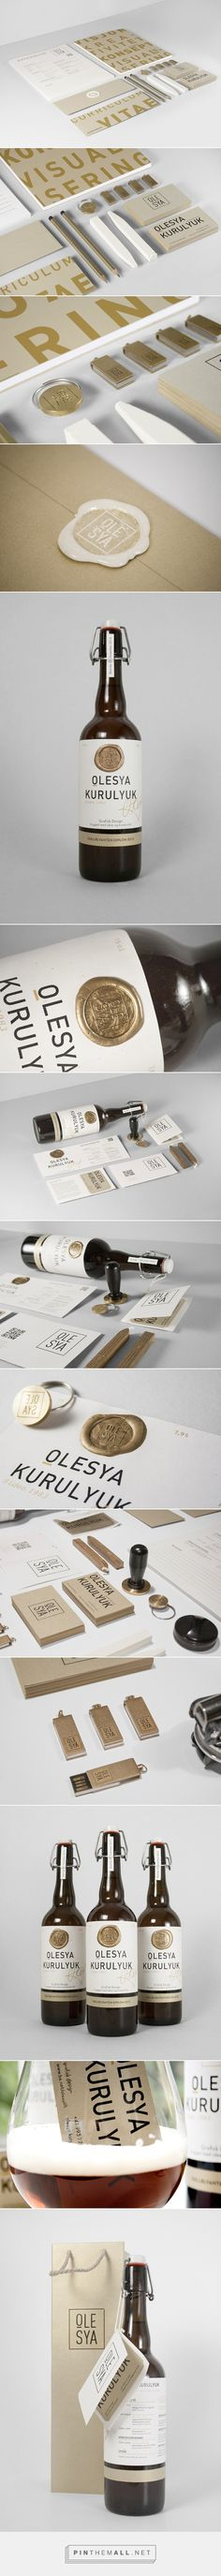 Self promotion on Behance by designer Olesya Kurulyuk curated by Packaging Diva PD. How cool is this personal packaging and branding campaign?